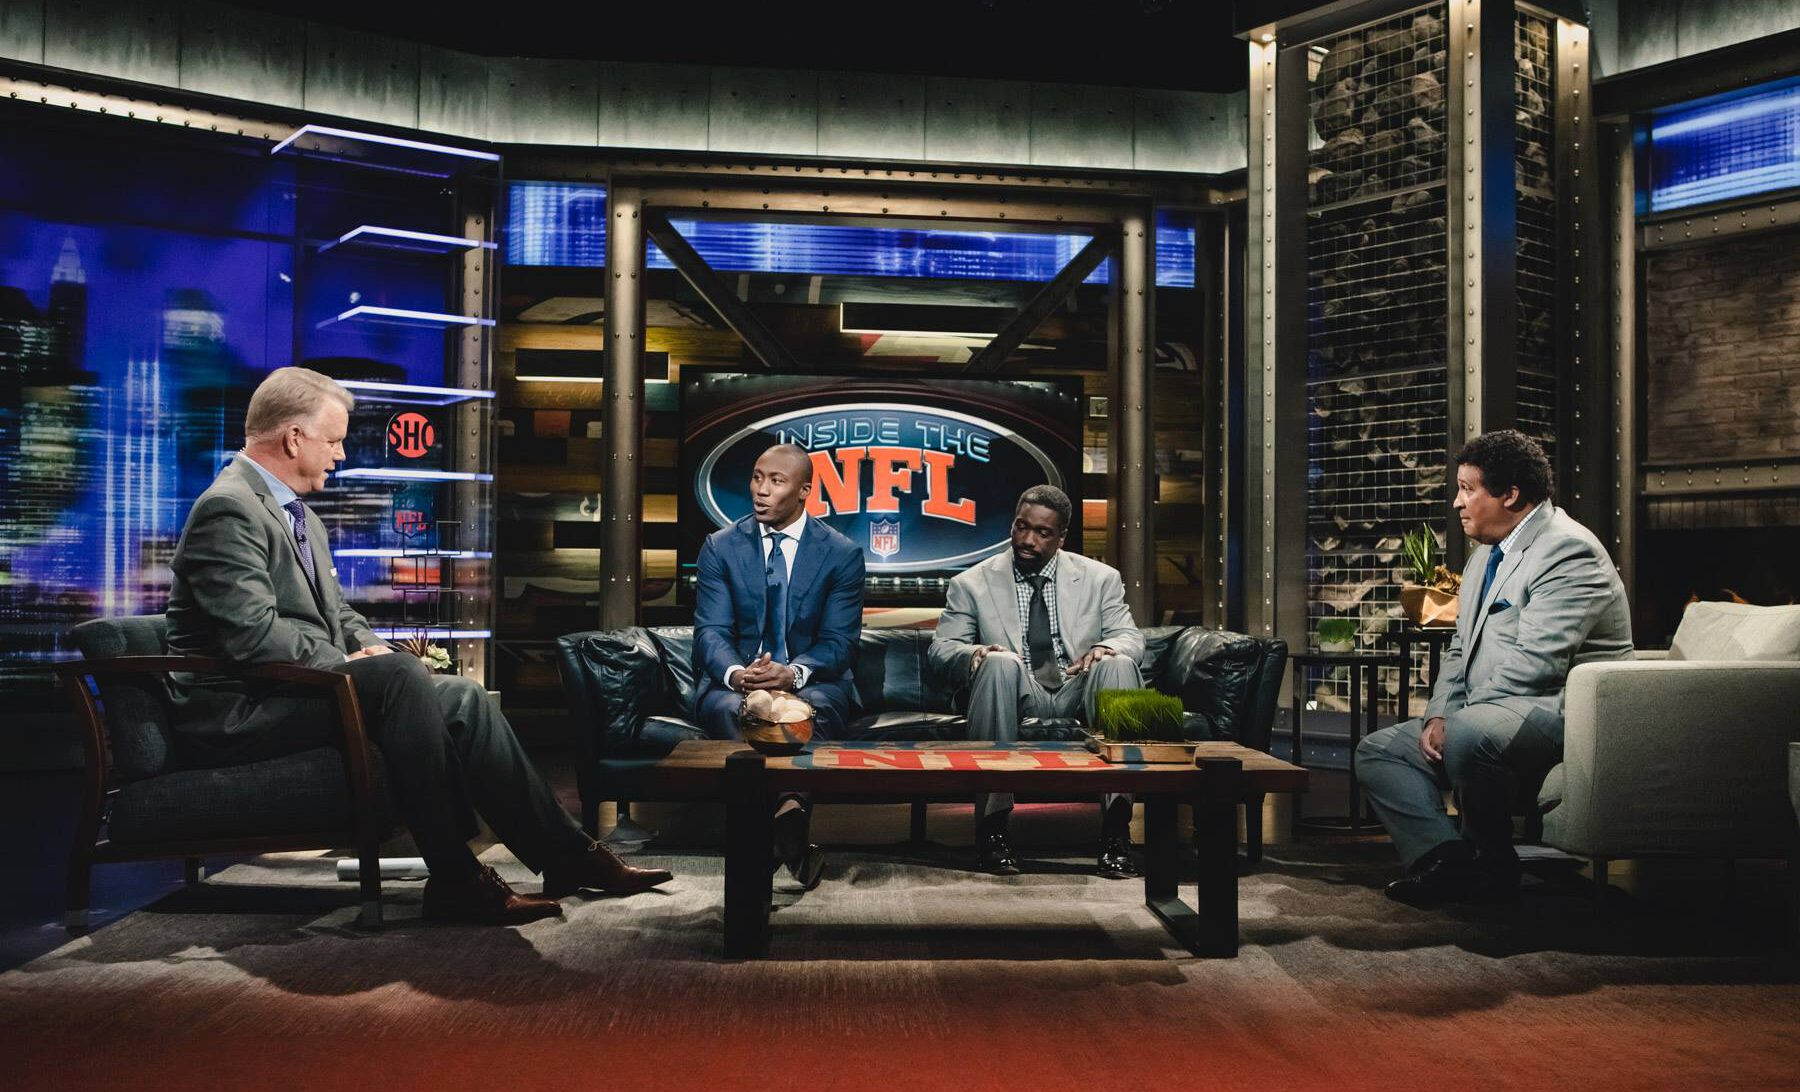 Brandon Marshall in an interview at the NFL showtime